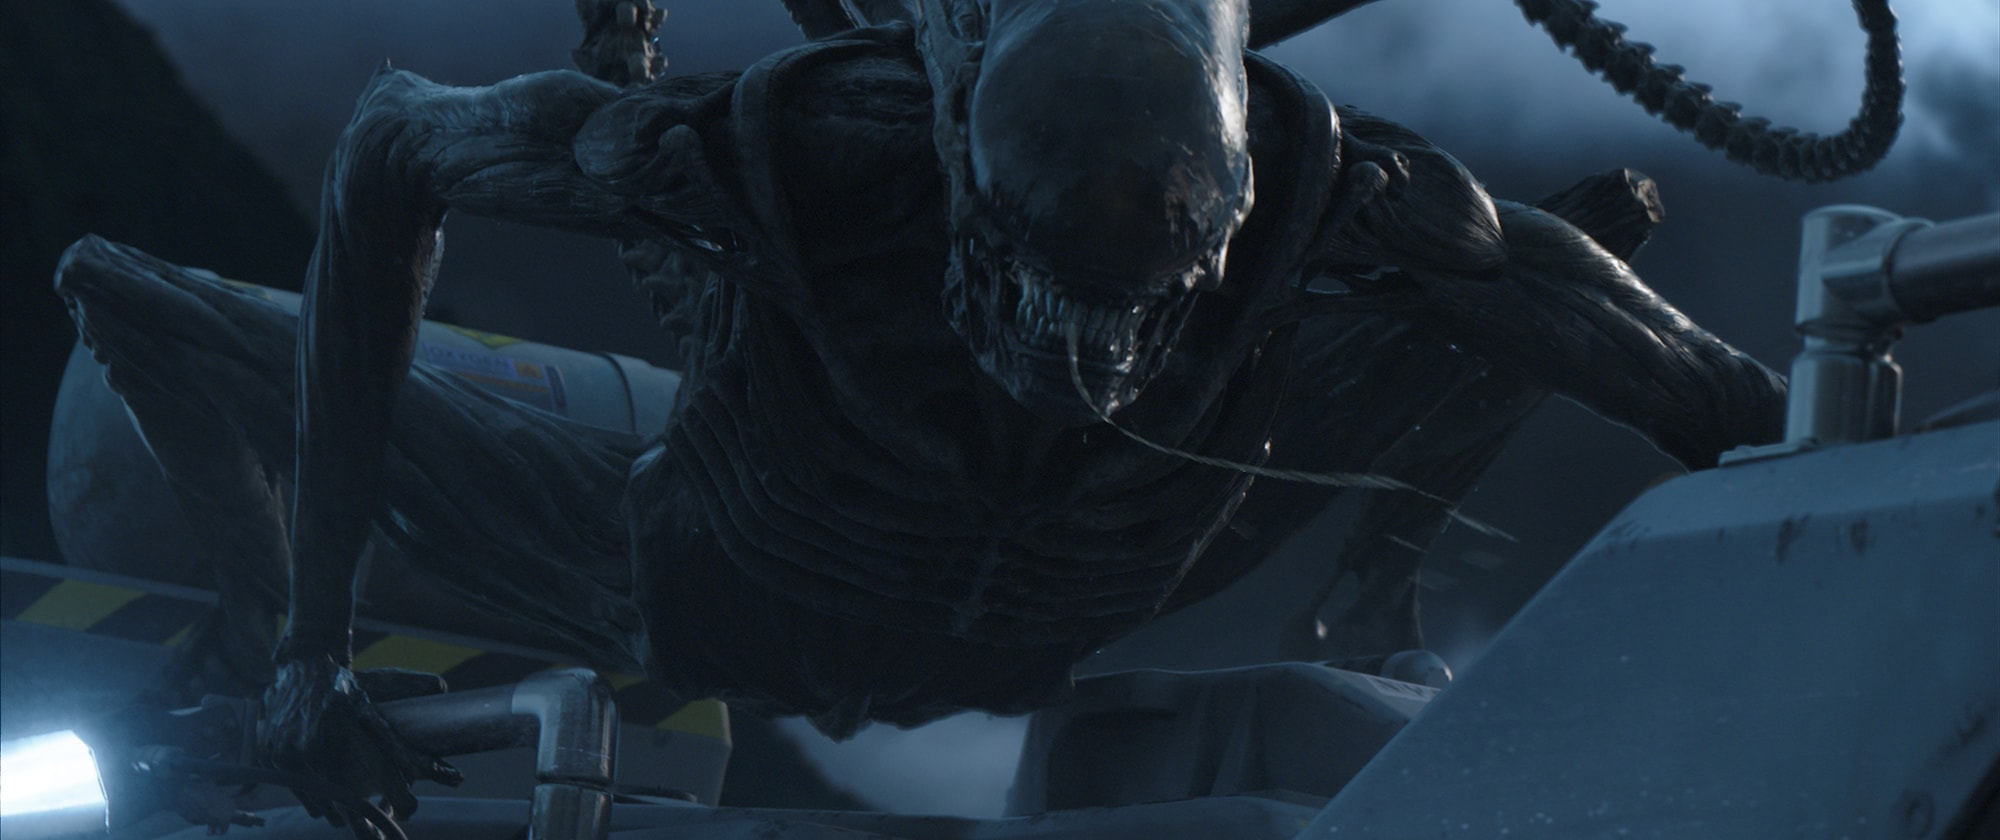 Alien Covenant: By Land and Air – fxguide